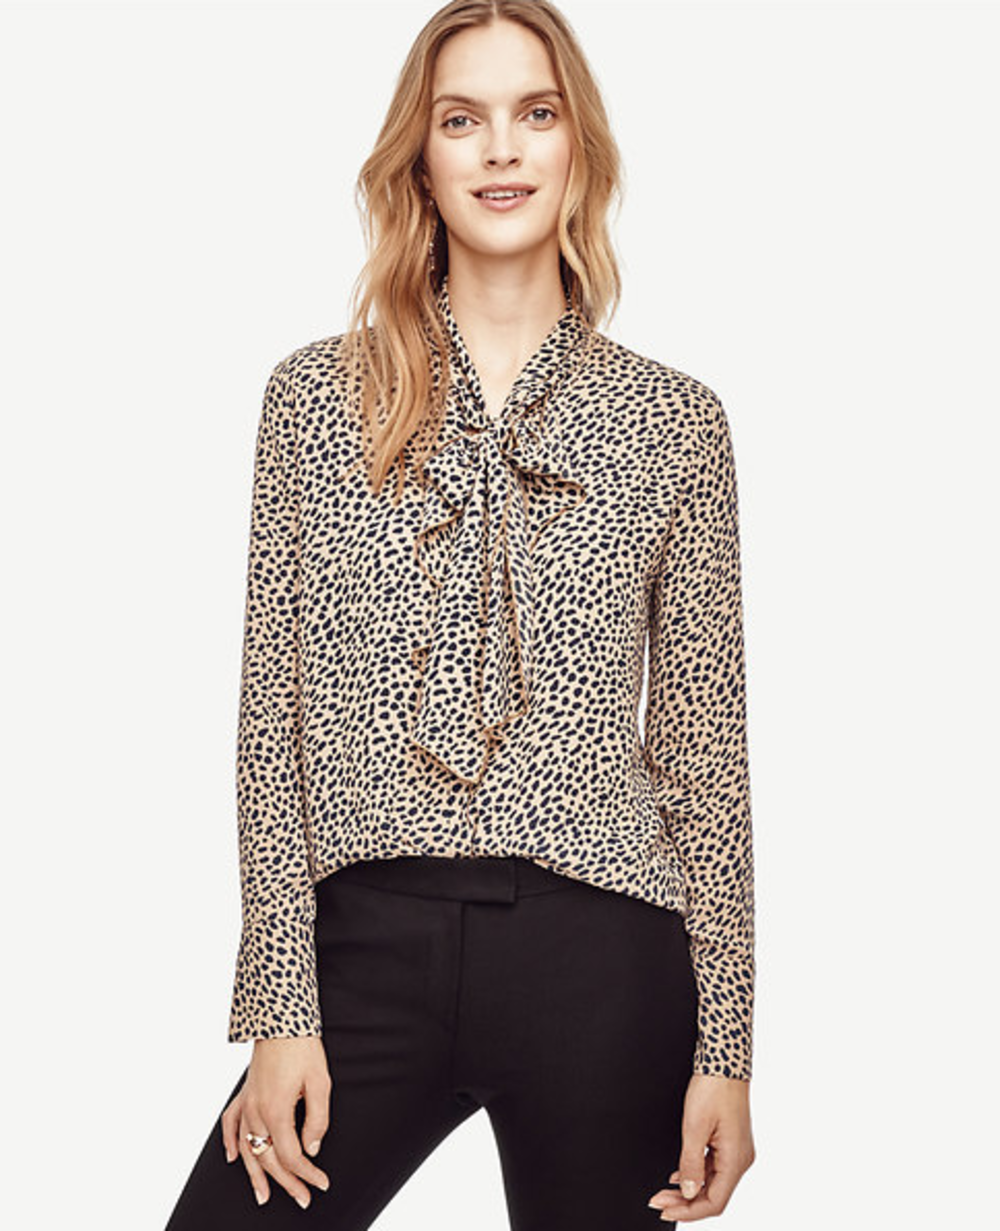 2c3c66fc54d Ann Taylor Spotted Tie Neck Ruffle Blouse   6 Fall Wardrobe Essentials for  Breastfeeding in Style Convenient, comfy and fashionable? Believe it.